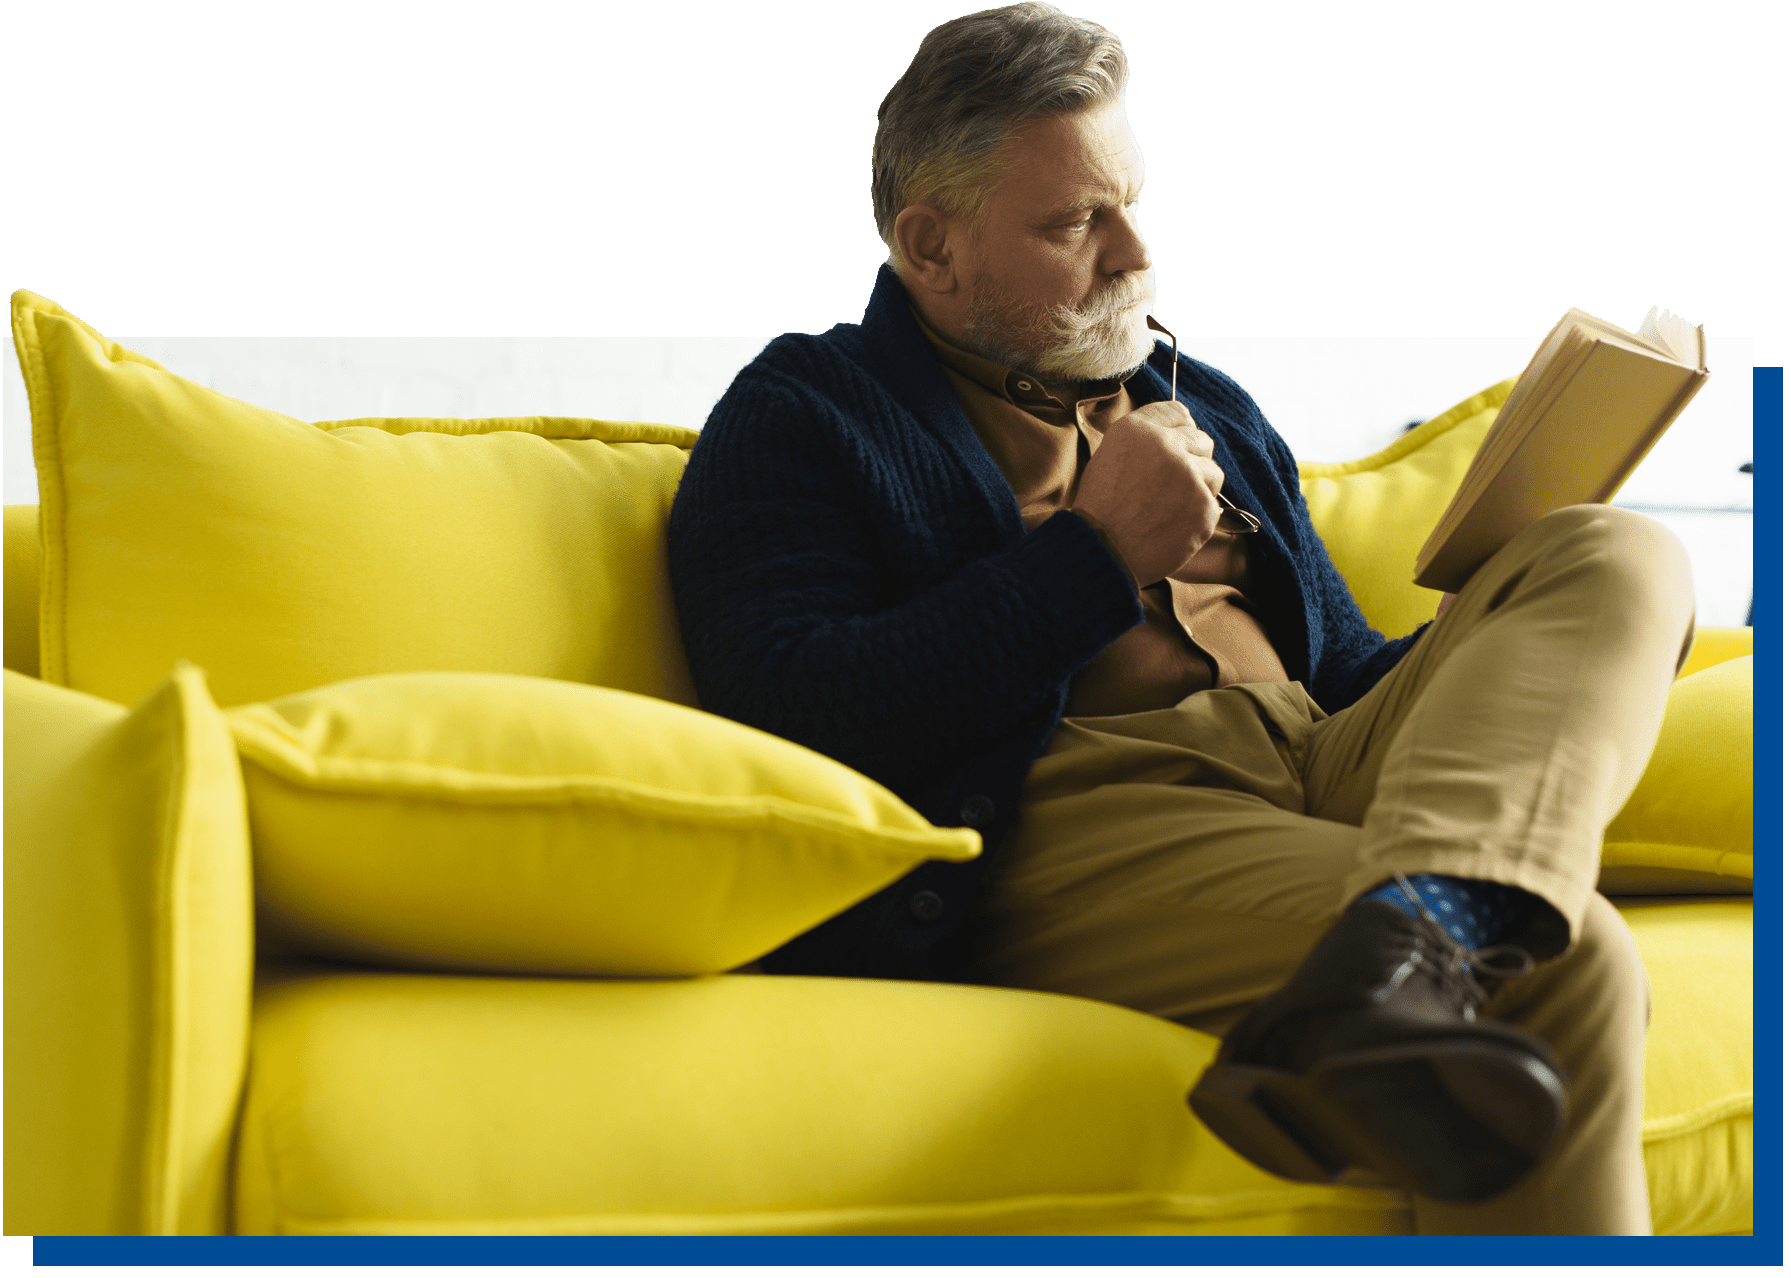 Man reading book on couch